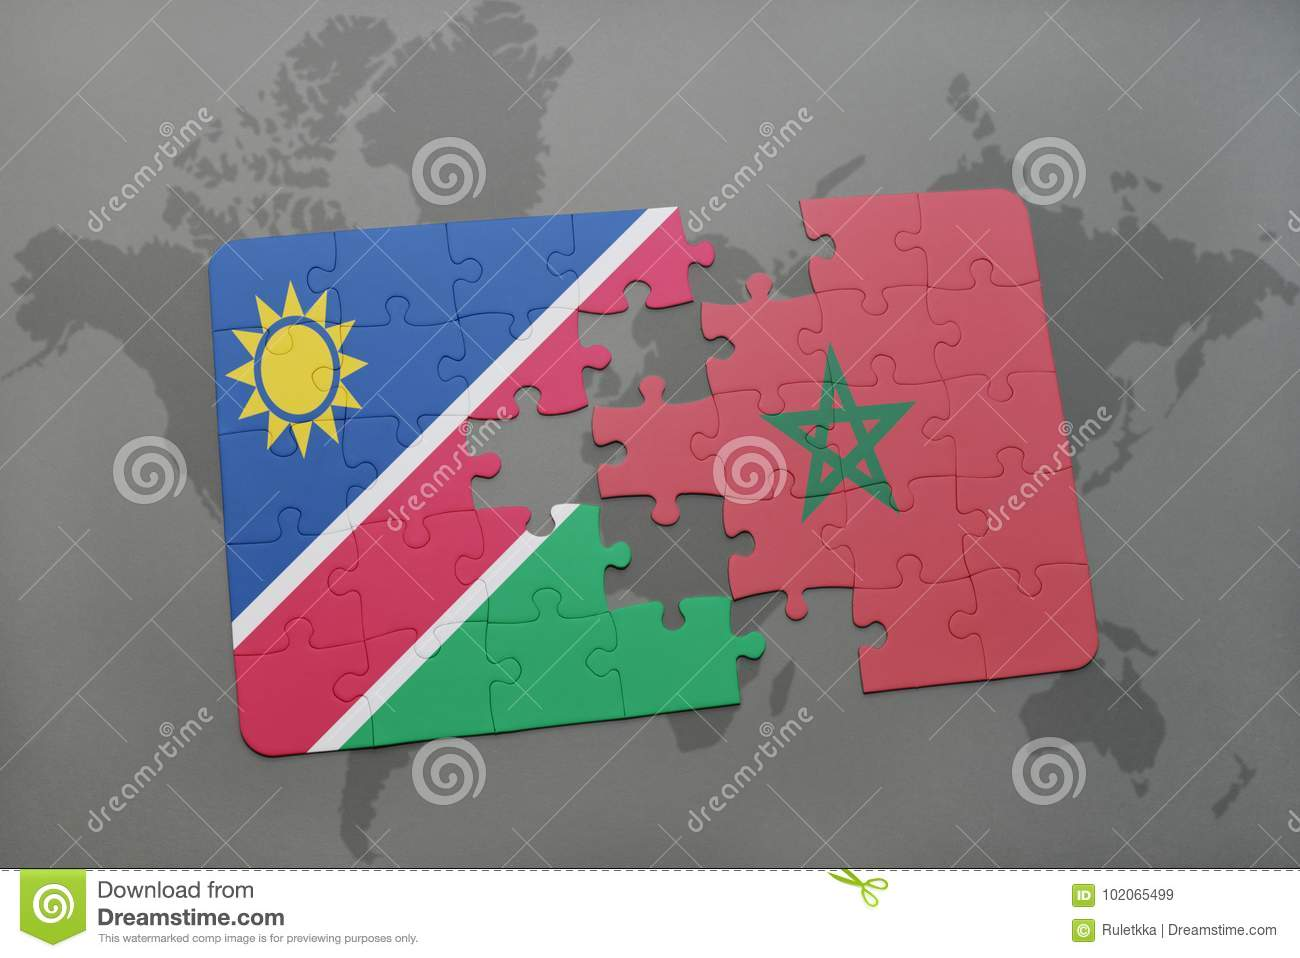 puzzle with the national flag of namibia and morocco on a world map